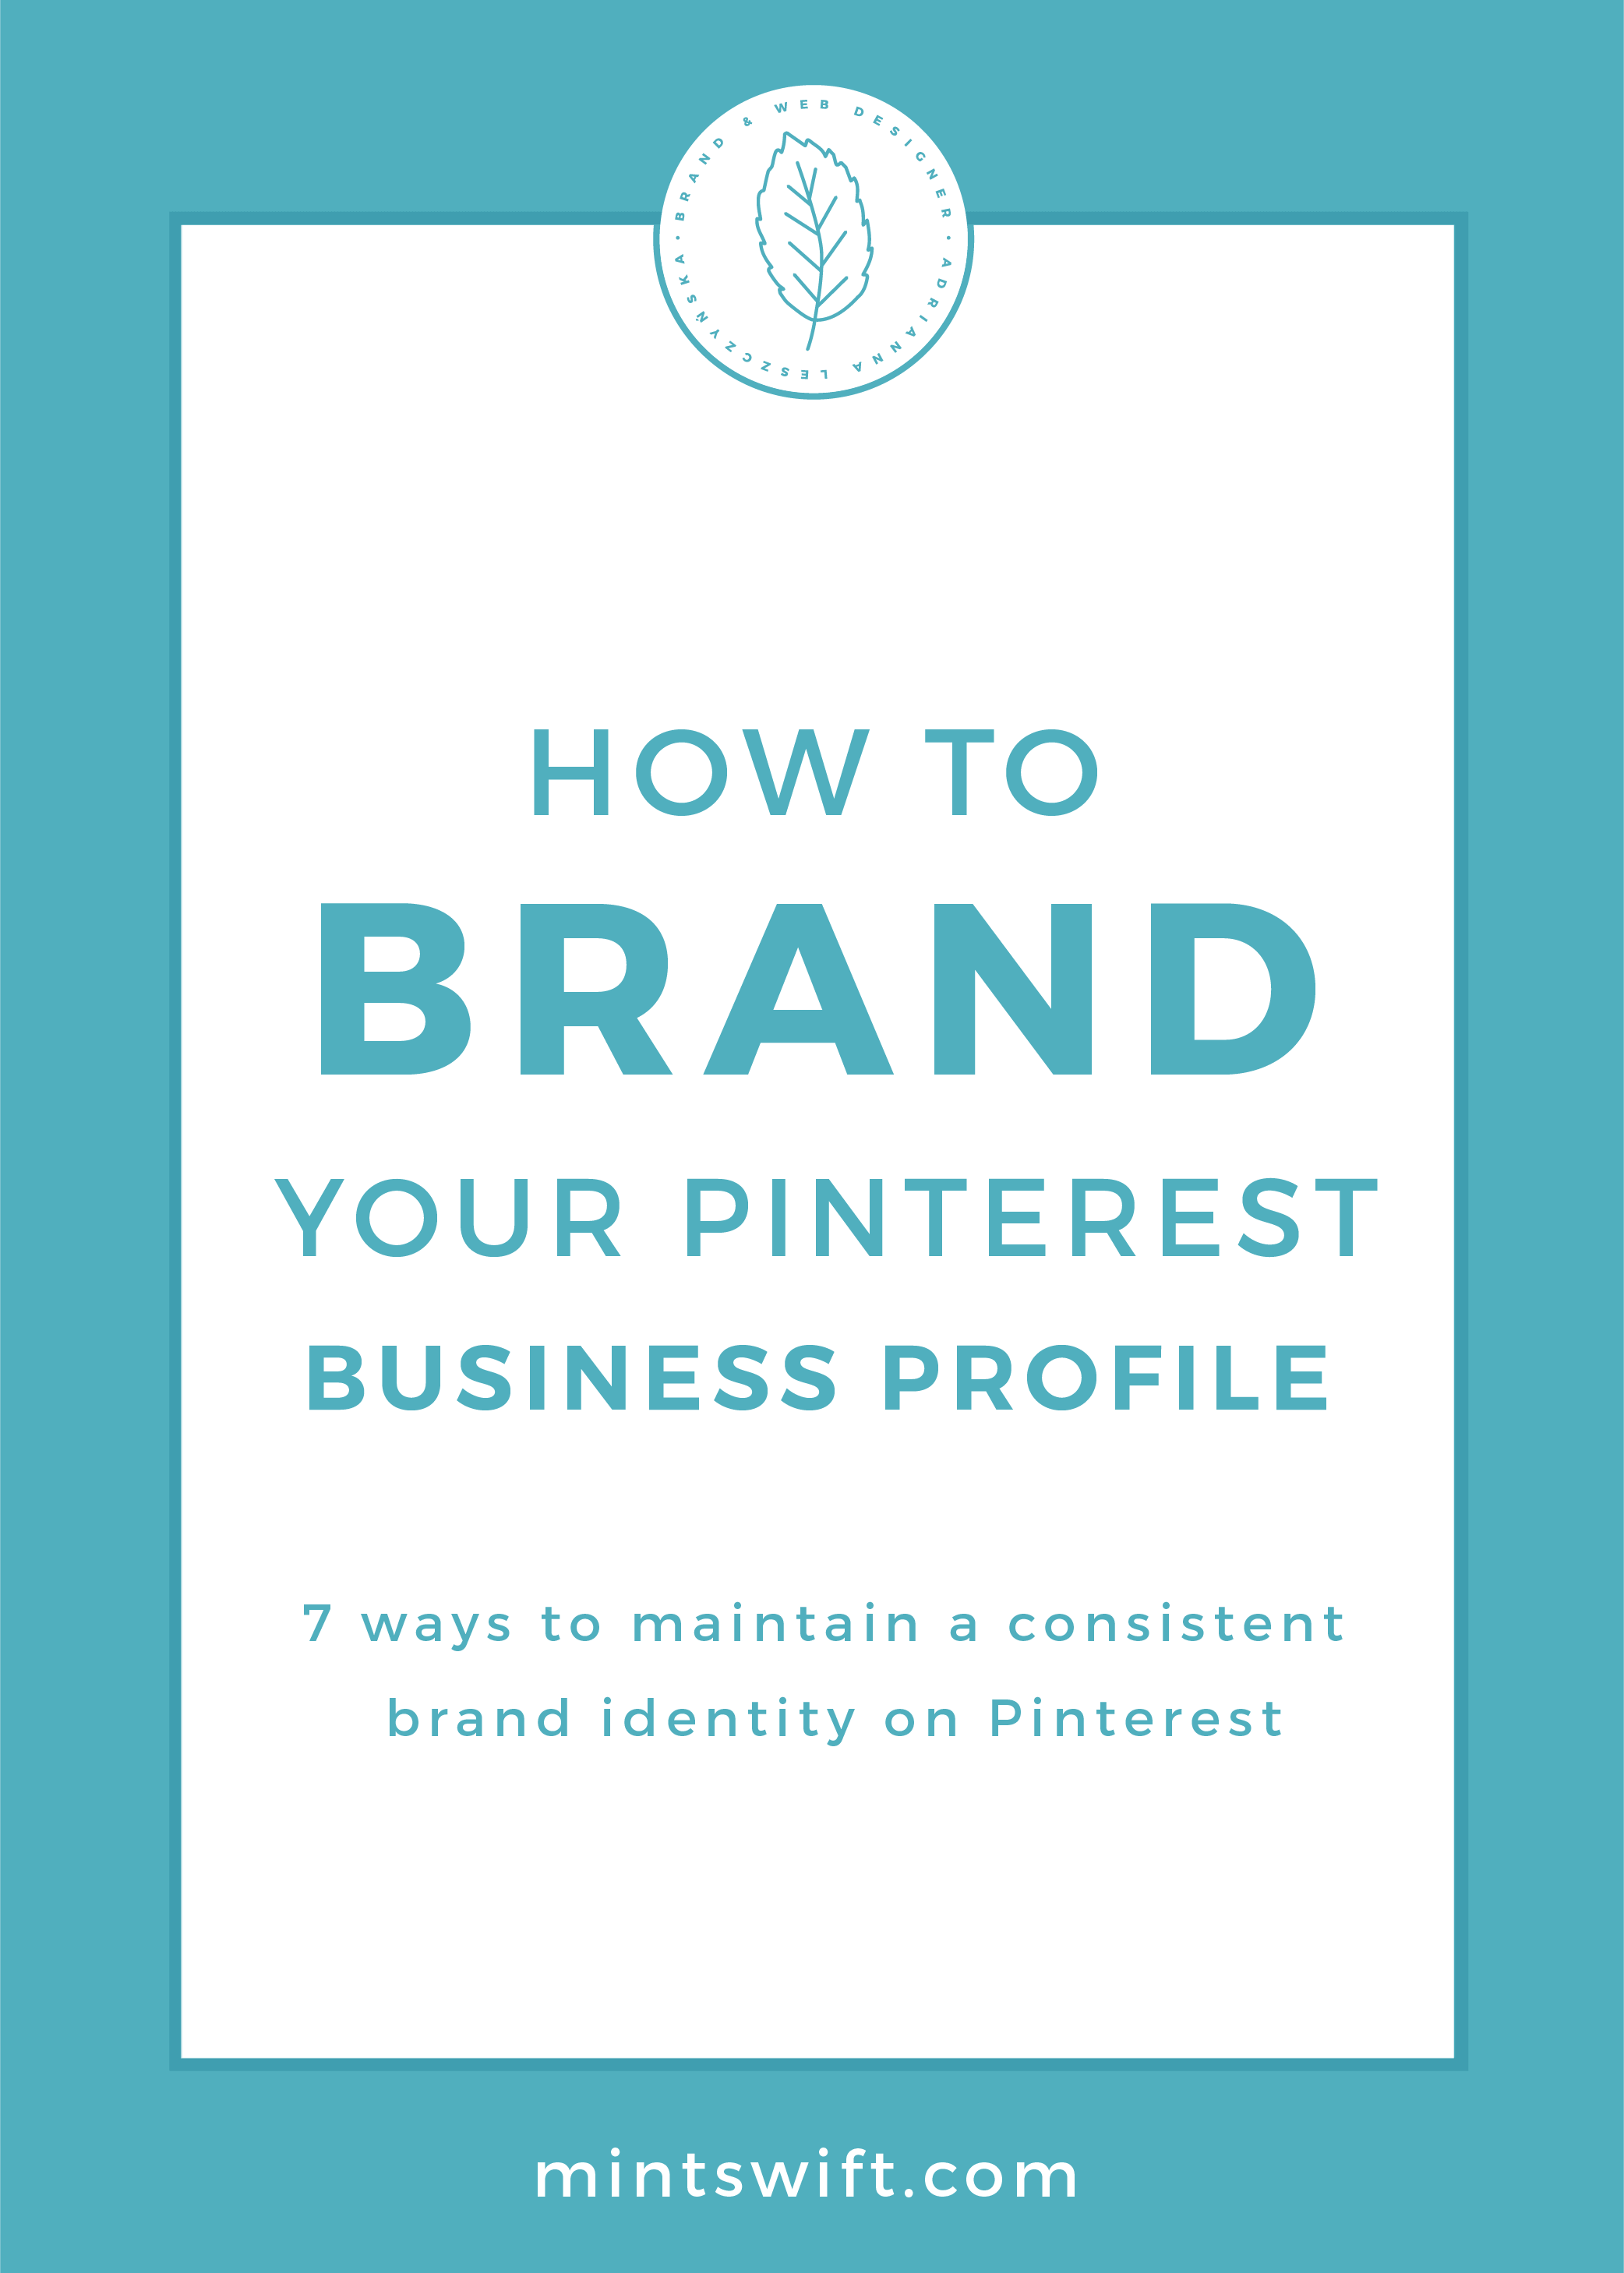 How to Brand Your Pinterest Business Profile. 7 Ways to Maintain a Consistent Brand Identity on Pinterest by MintSwift